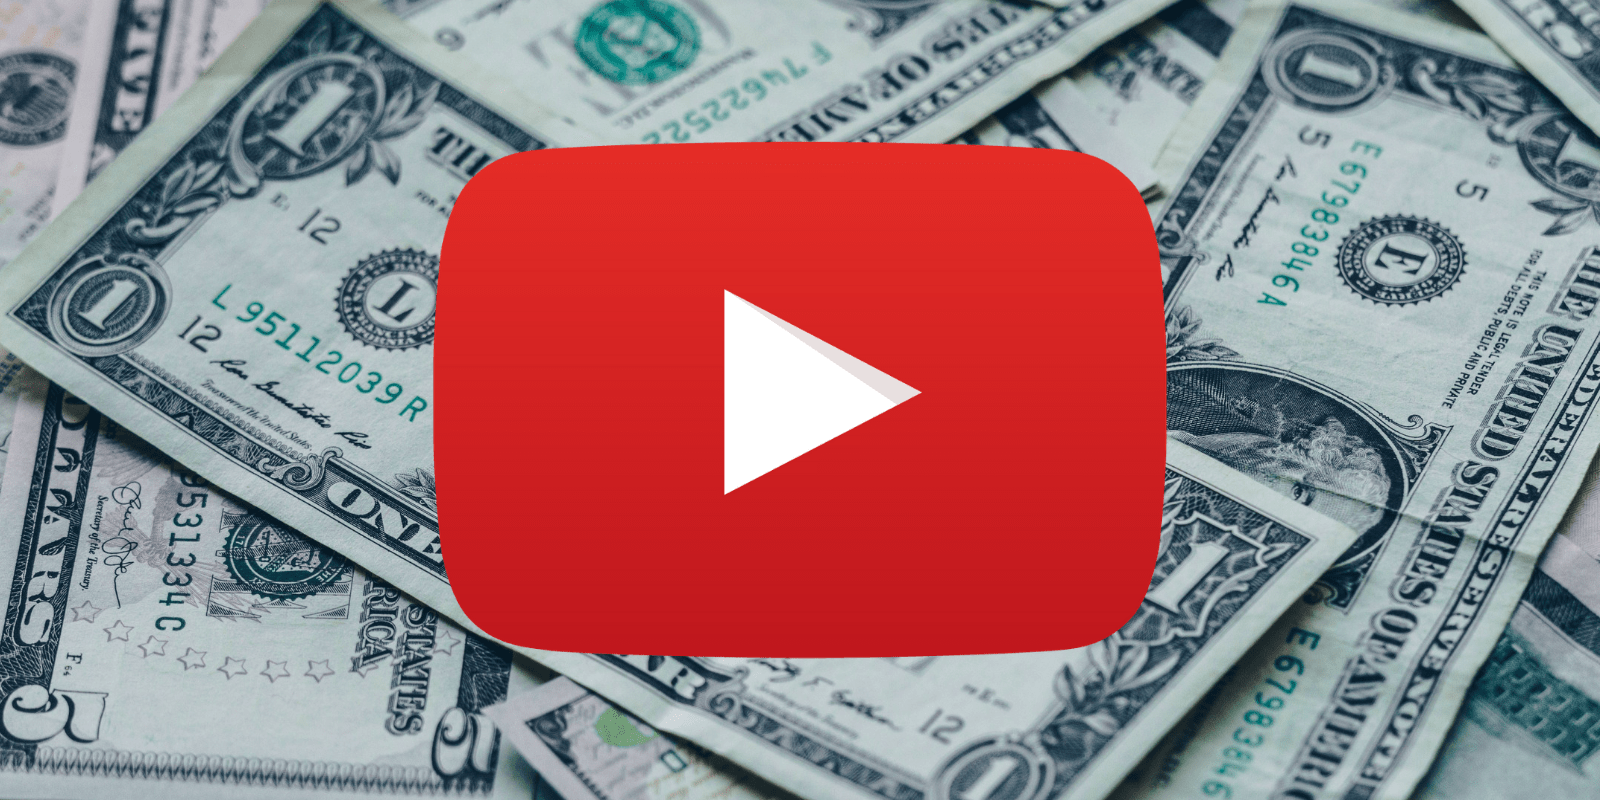 Top 5 Highest Paid YouTubers in the world as of 2018